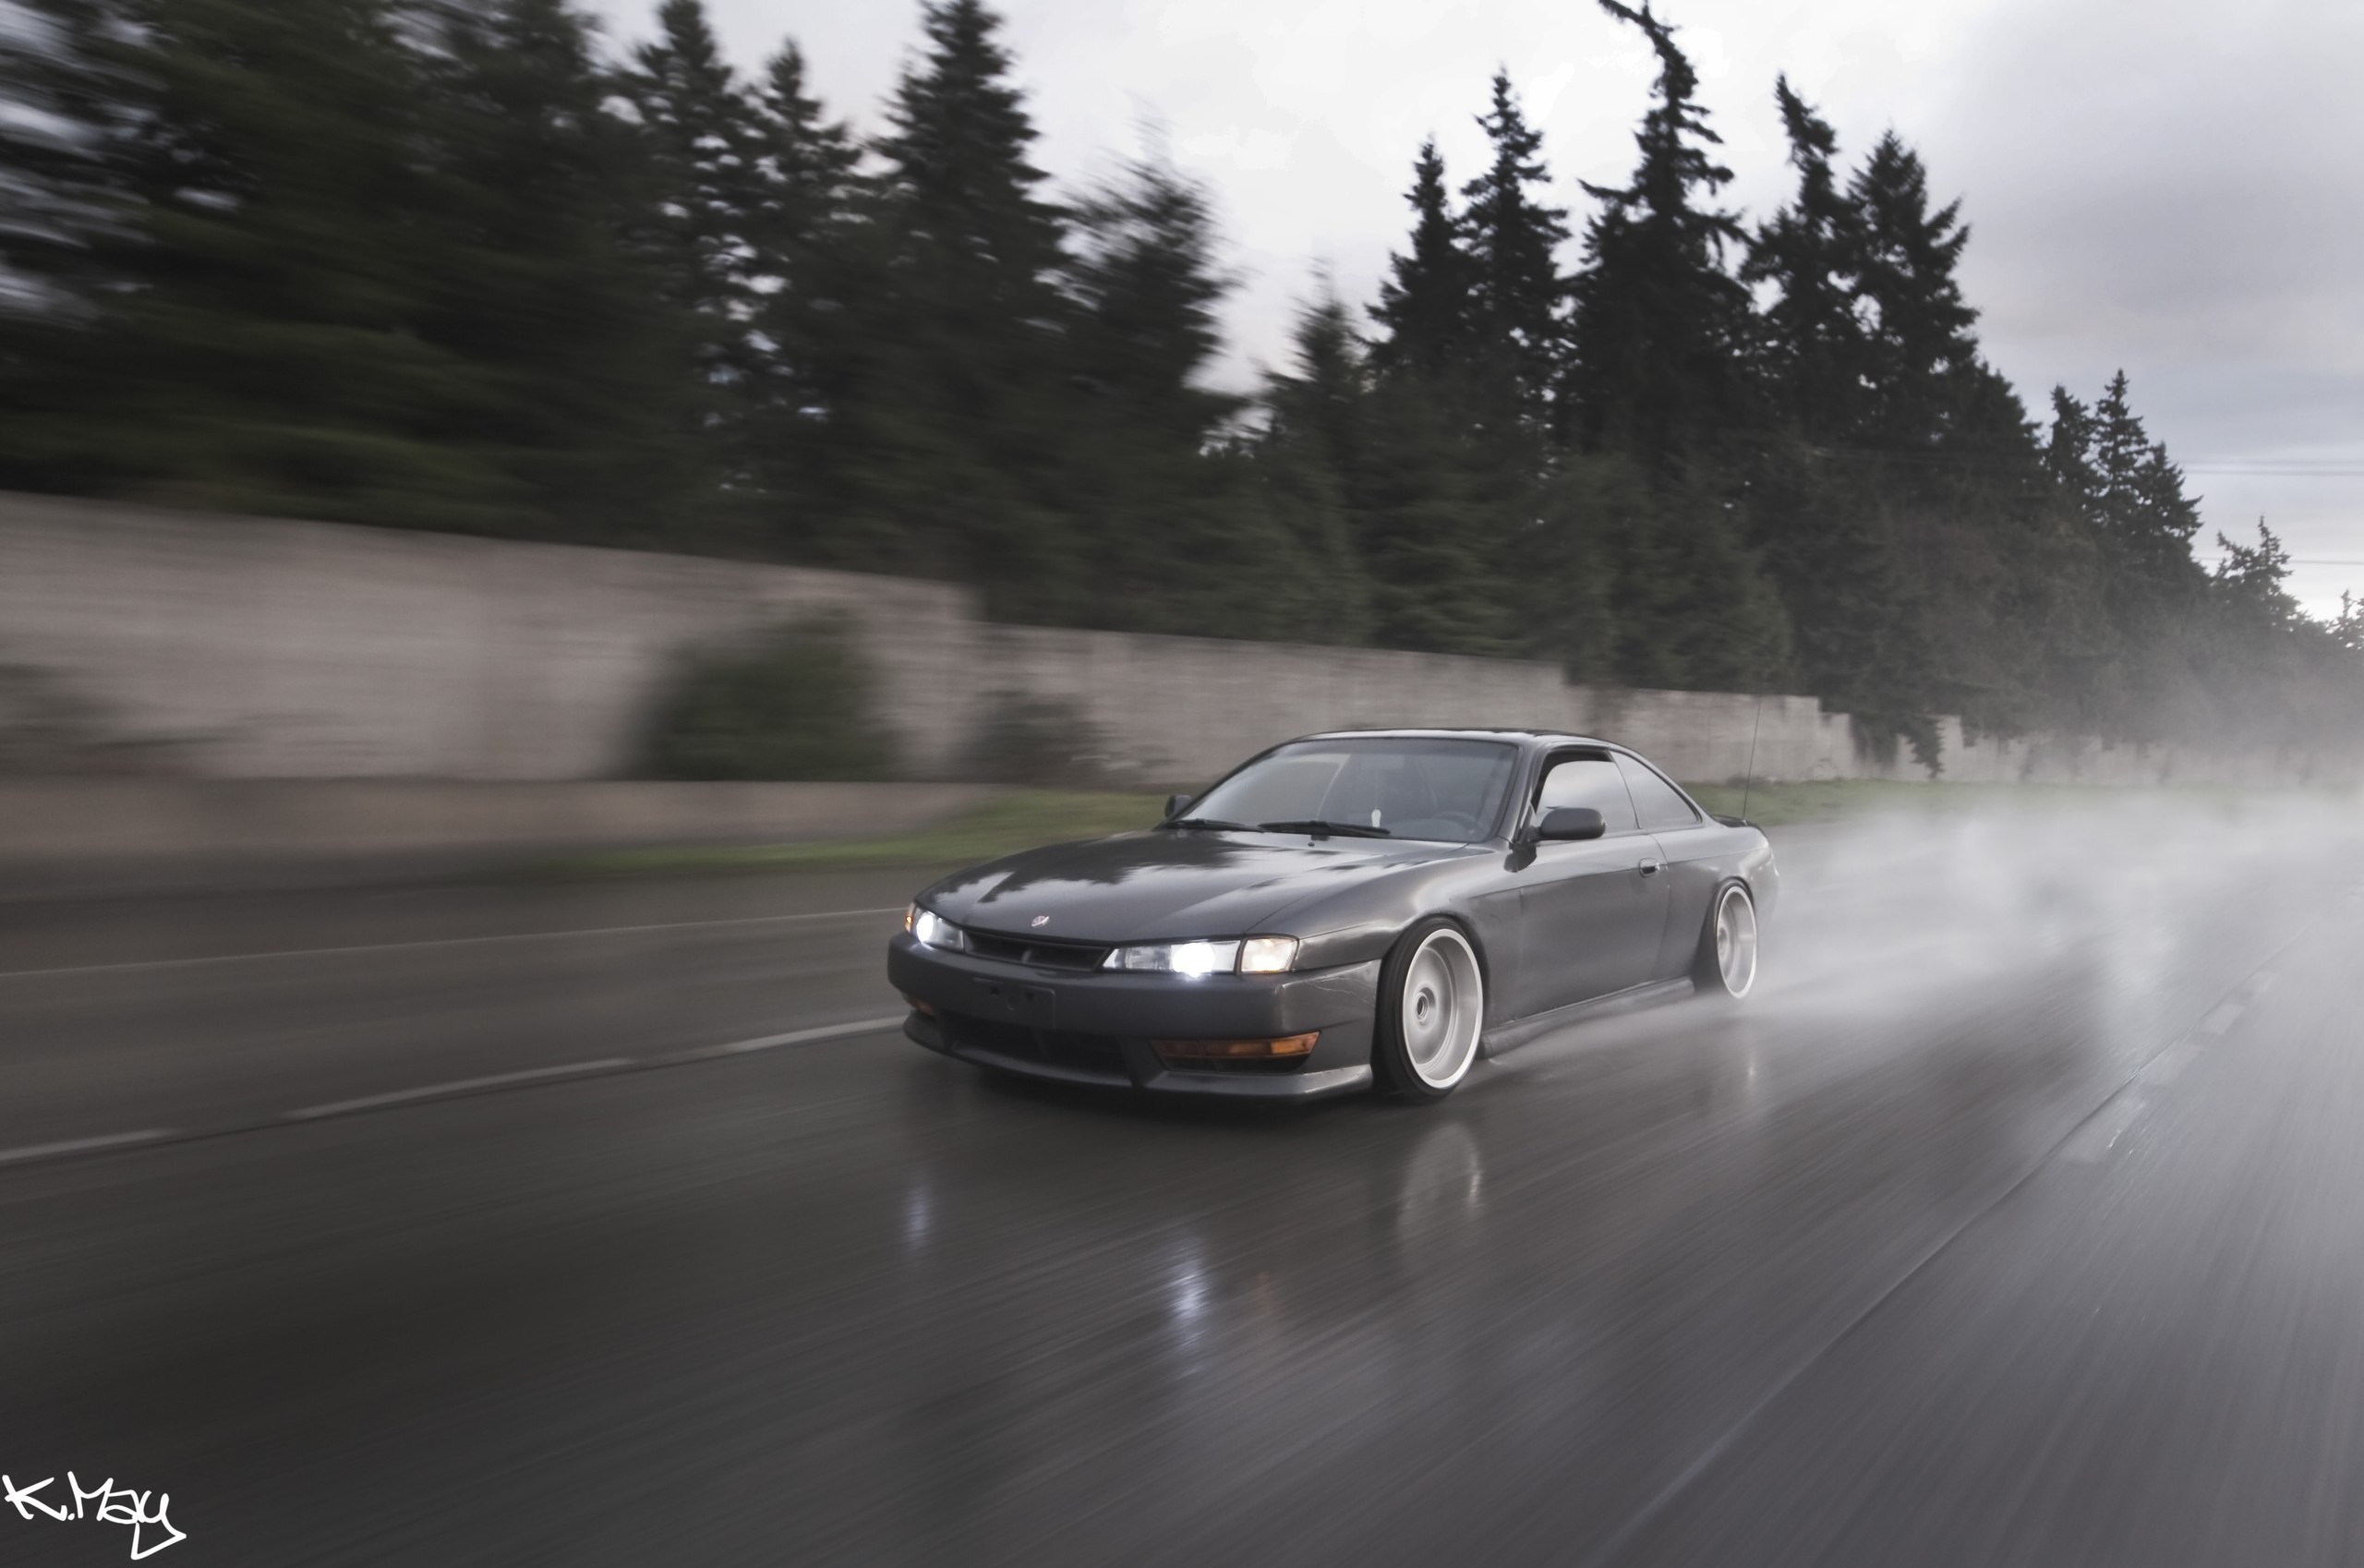 2560x1698 - Nissan Silvia S14 Wallpapers 19